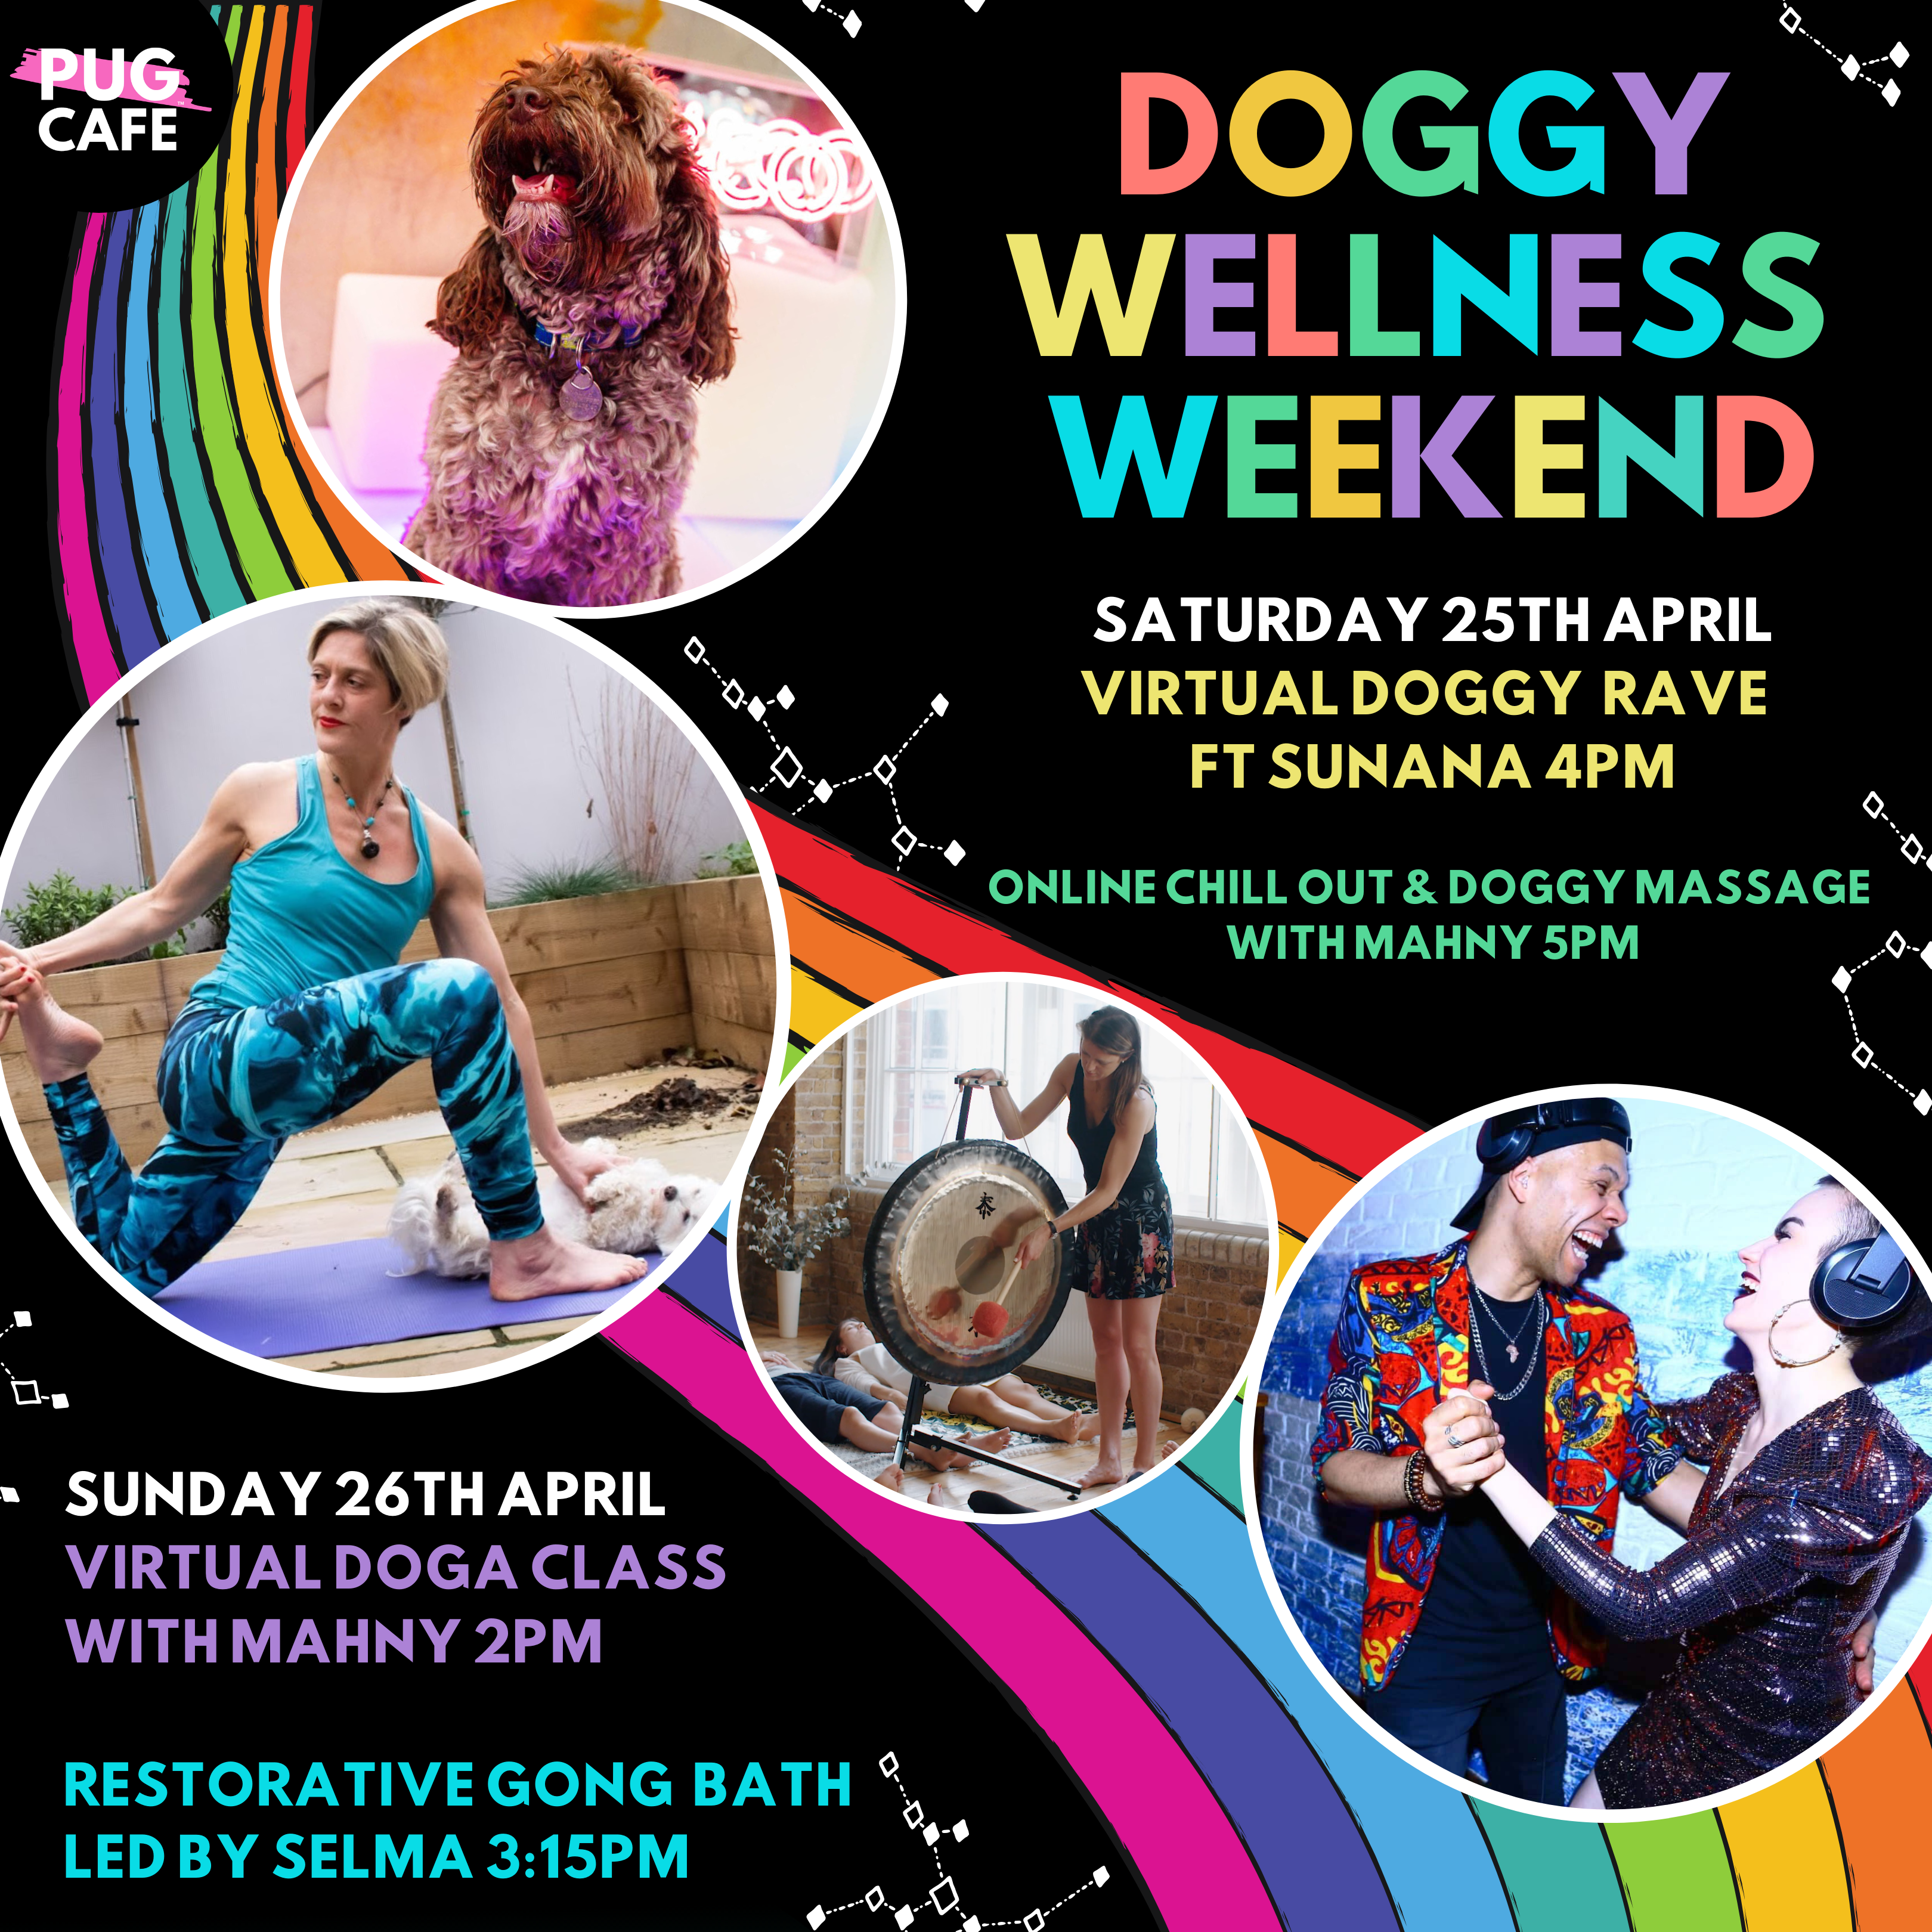 Doggy Wellness Weekend Square (4)